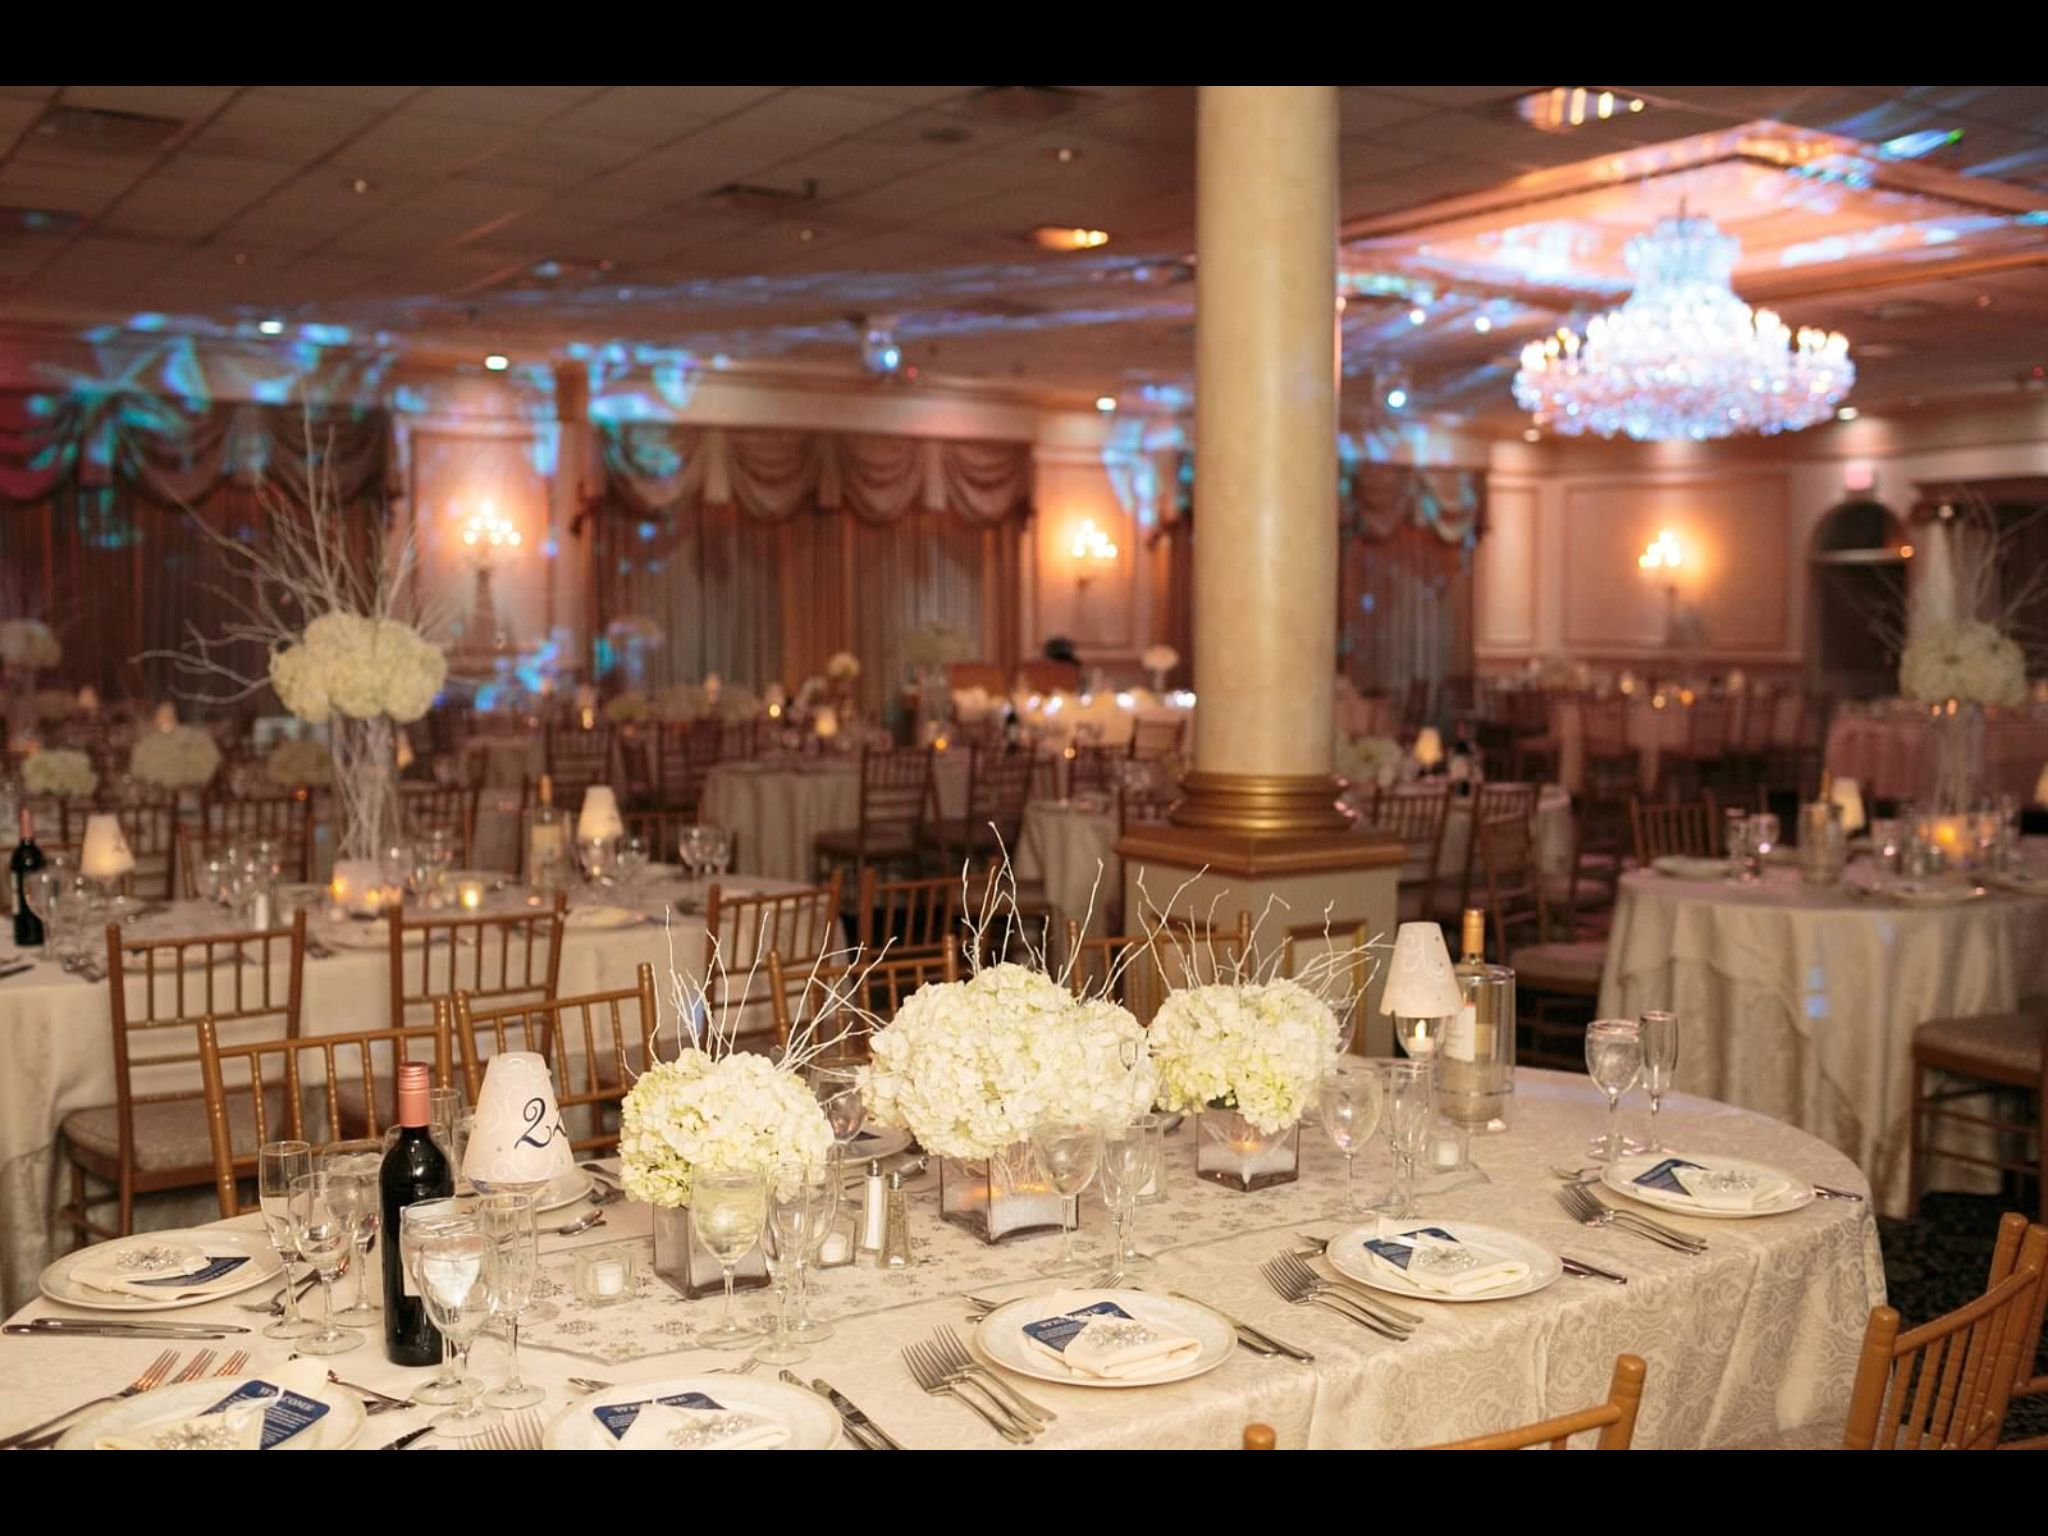 Wedding dinner decoration ideas  Winter wedding dinner table flowers white hydrangeas  The Outcome